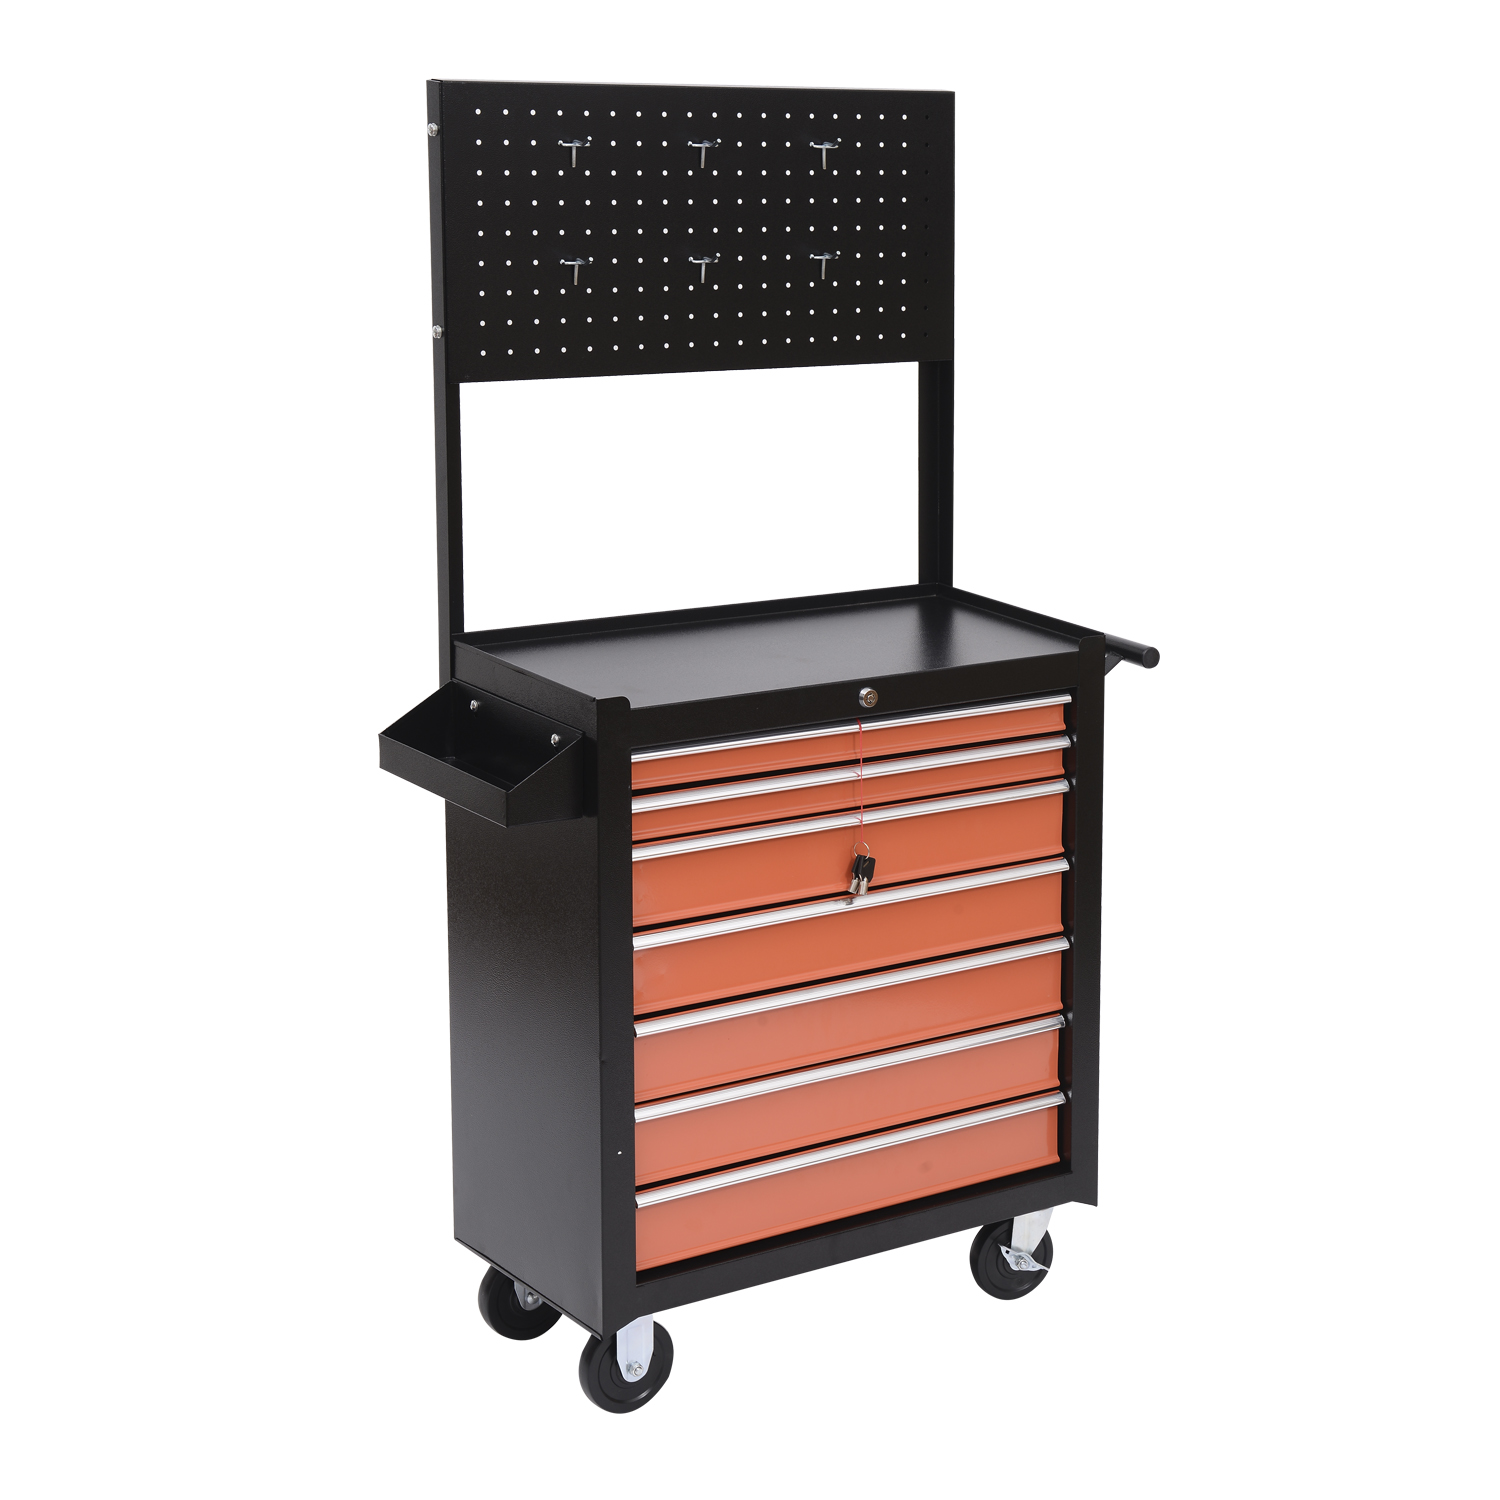 HomCom Heavy Duty Rolling Tool Chest Cabinet w/ 7 Drawers – Black and Orange